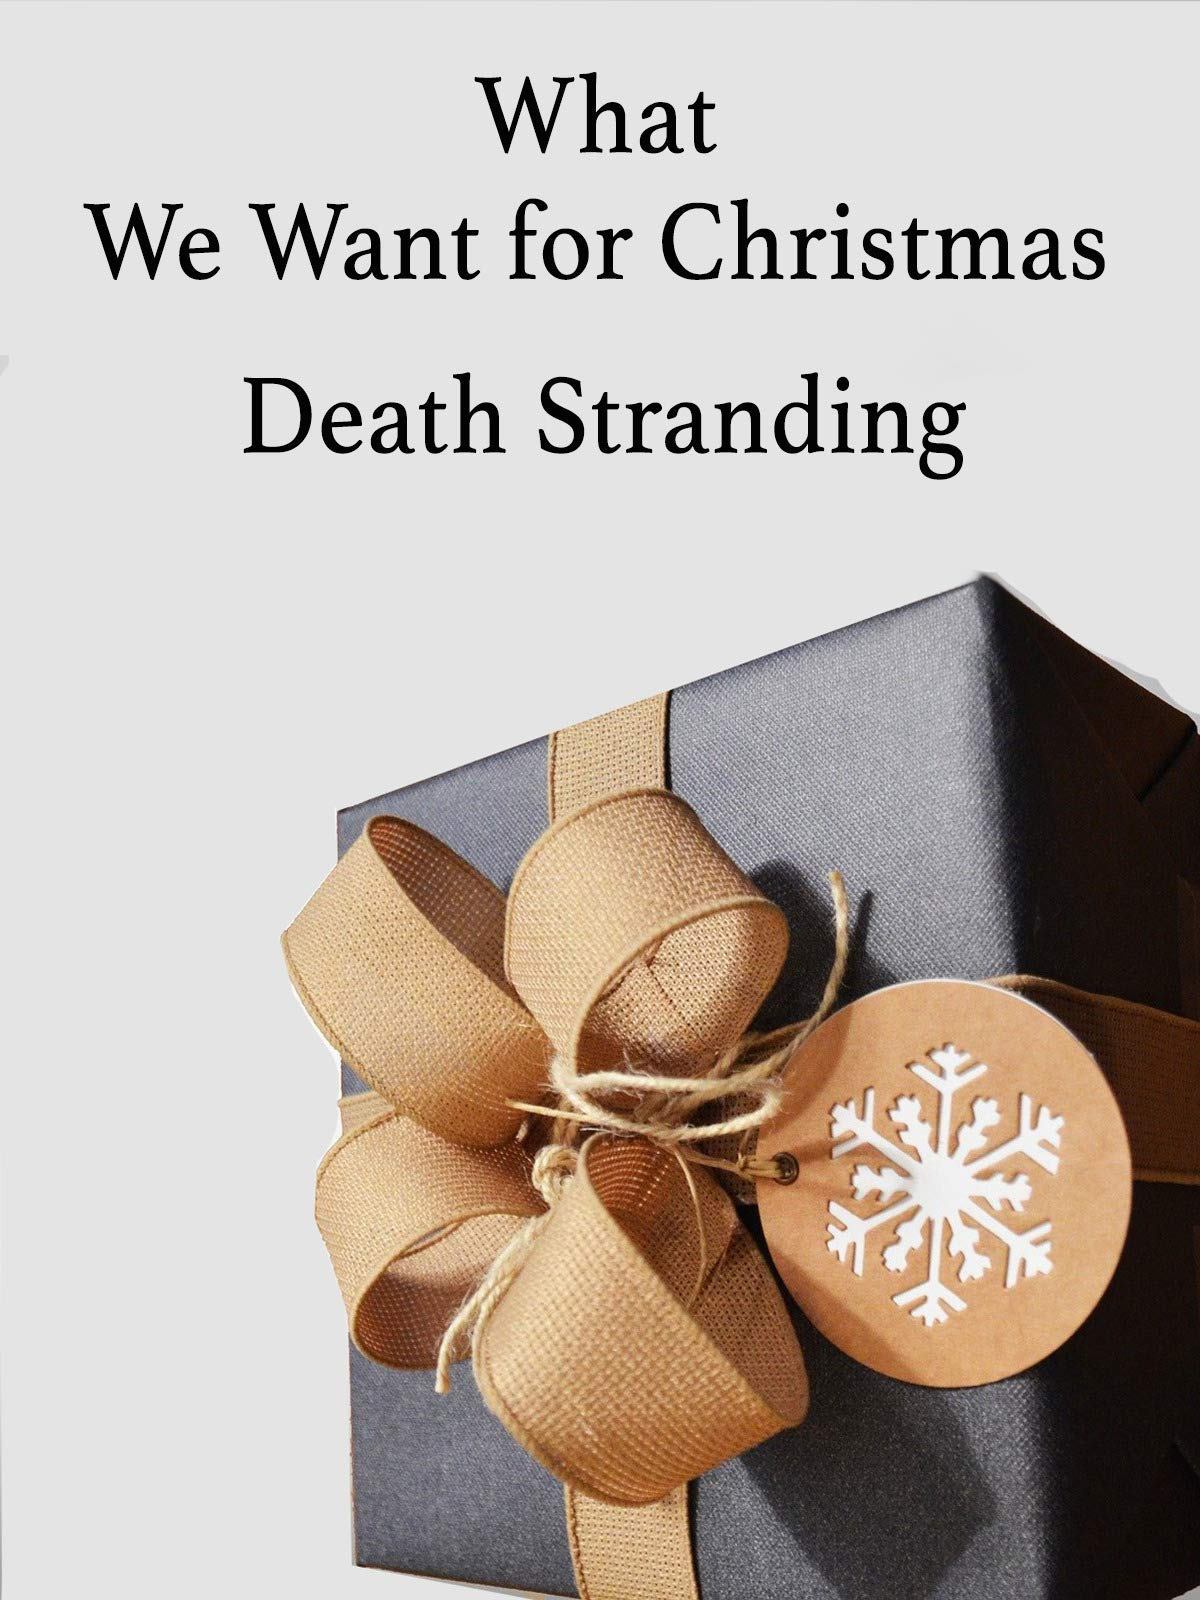 What We Want for Christmas Death Stranding